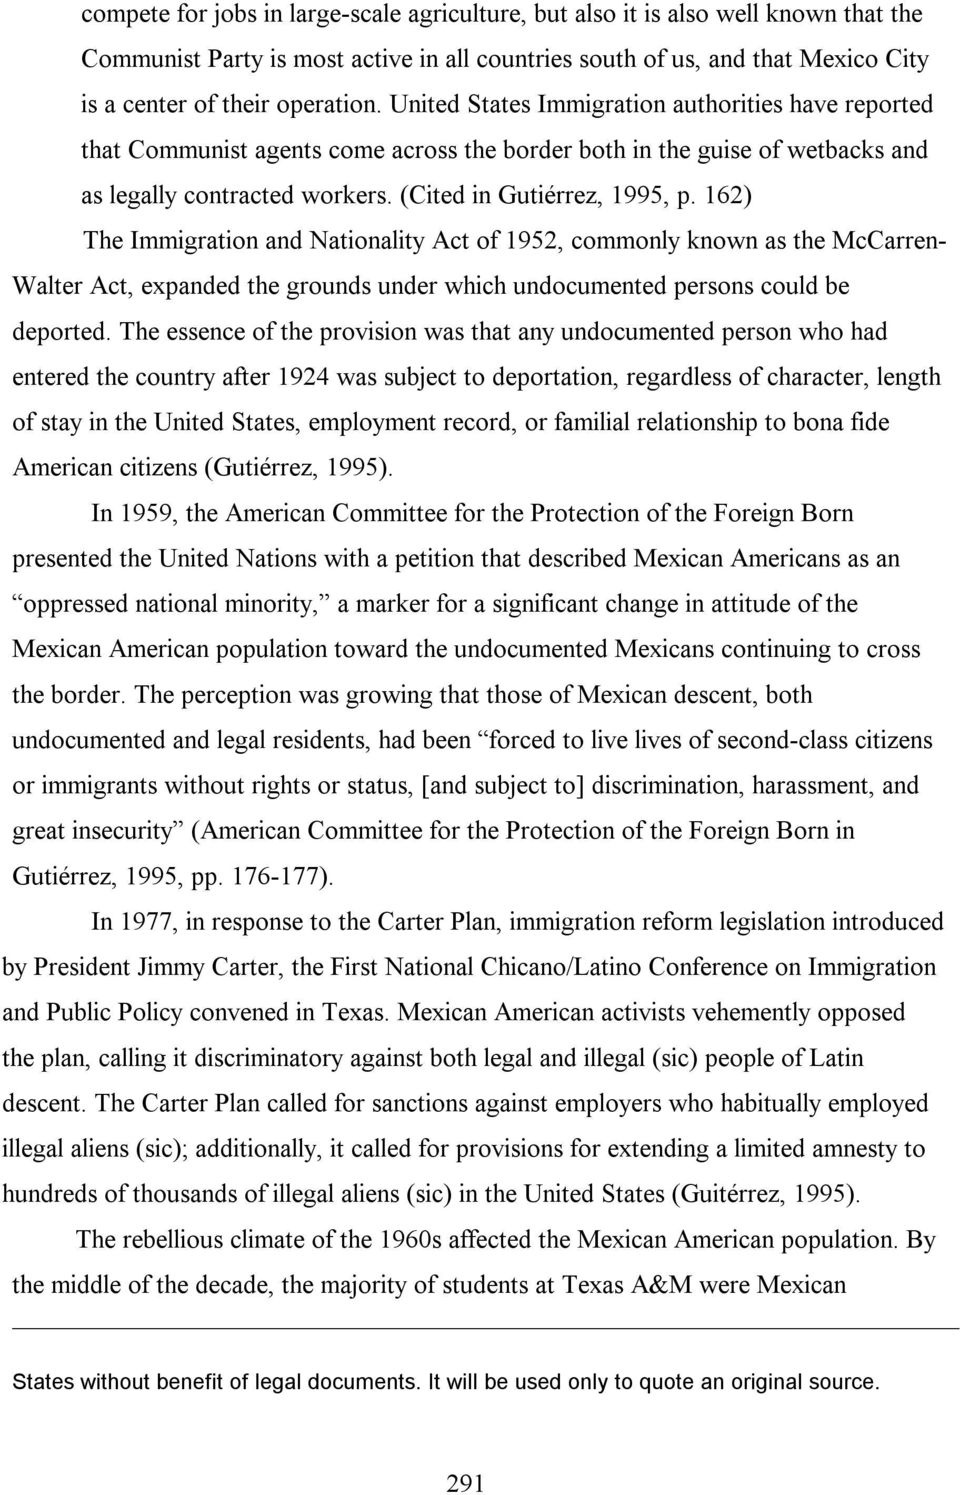 162) The Immigration and Nationality Act of 1952, commonly known as the McCarren- Walter Act, expanded the grounds under which undocumented persons could be deported.